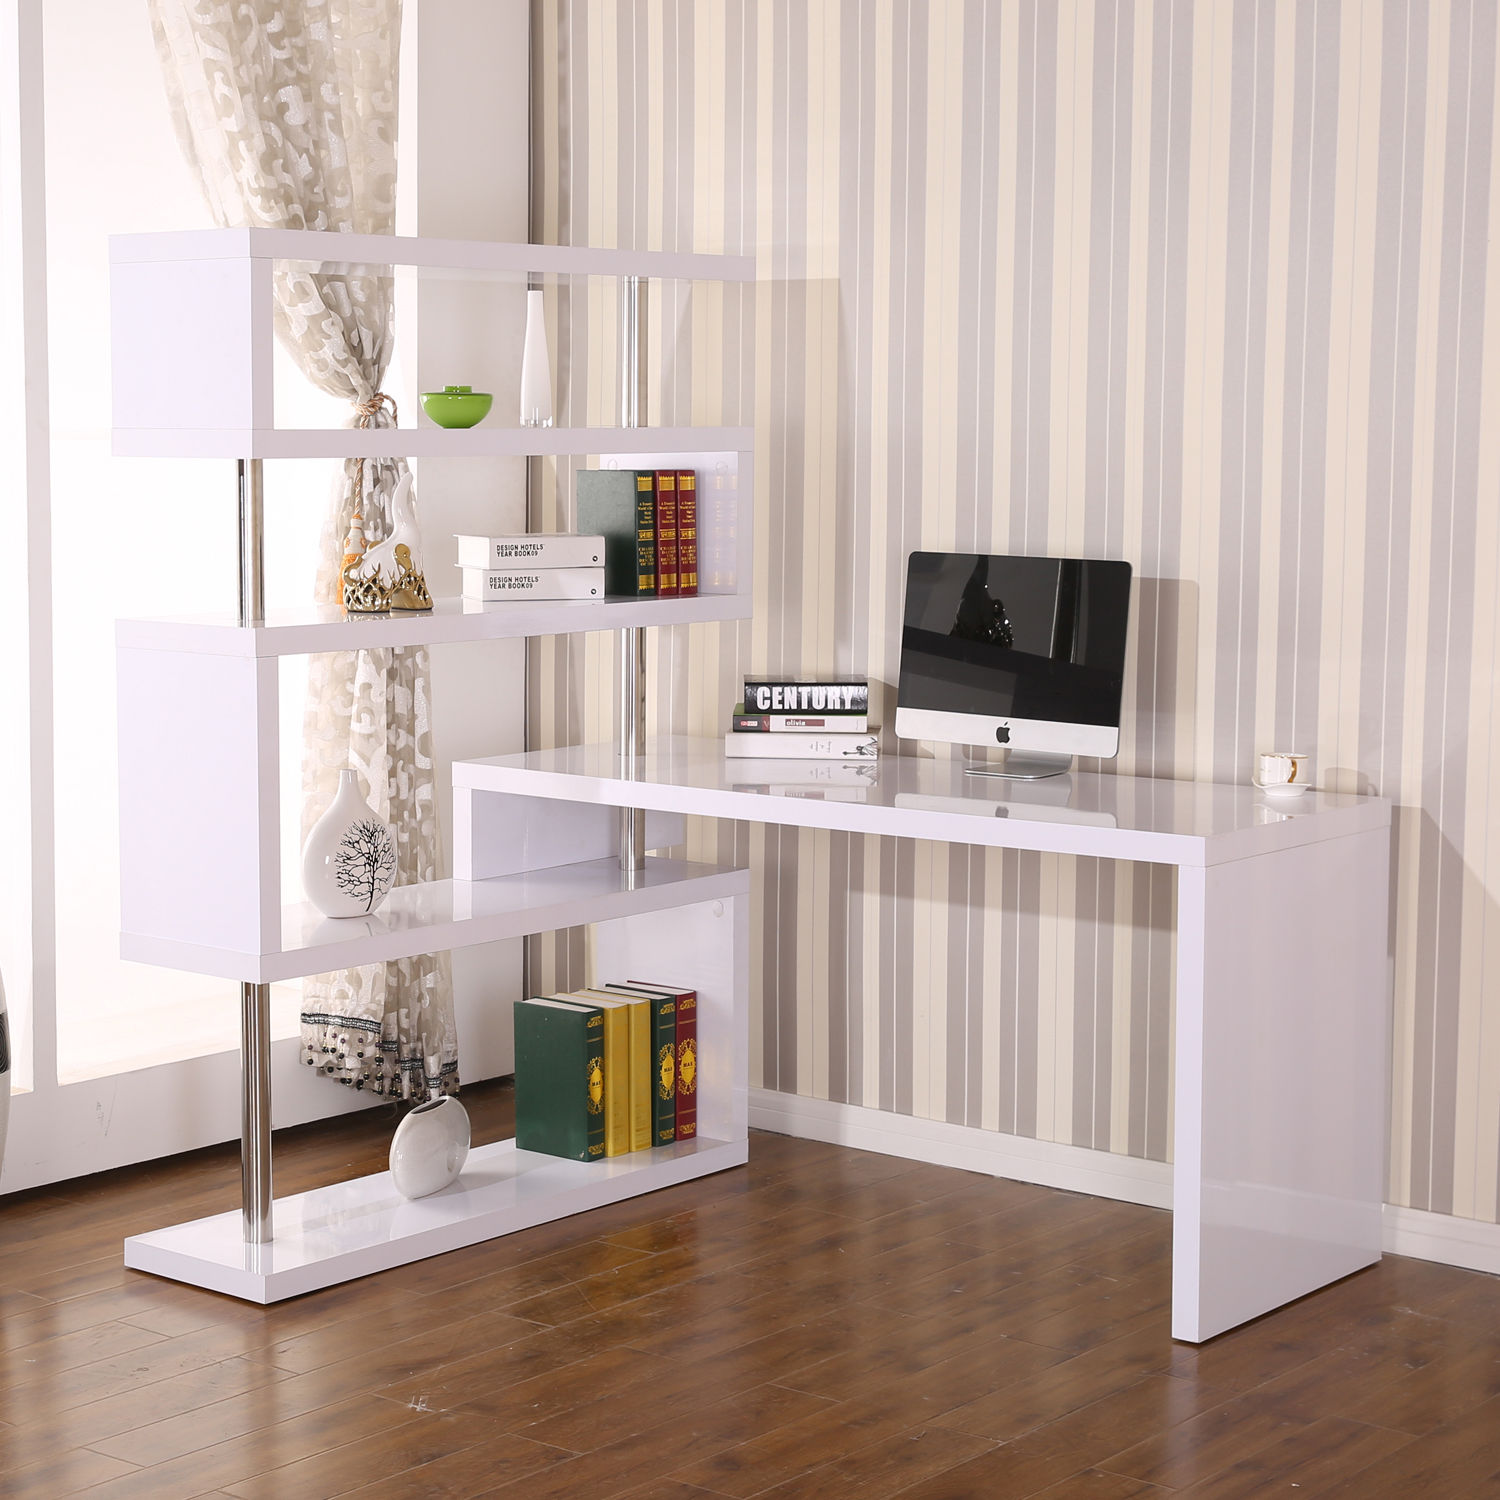 Home Office Foldable Rotating Corner Desk with Shelves - BRAND NEW w/ FREE SHIPPING